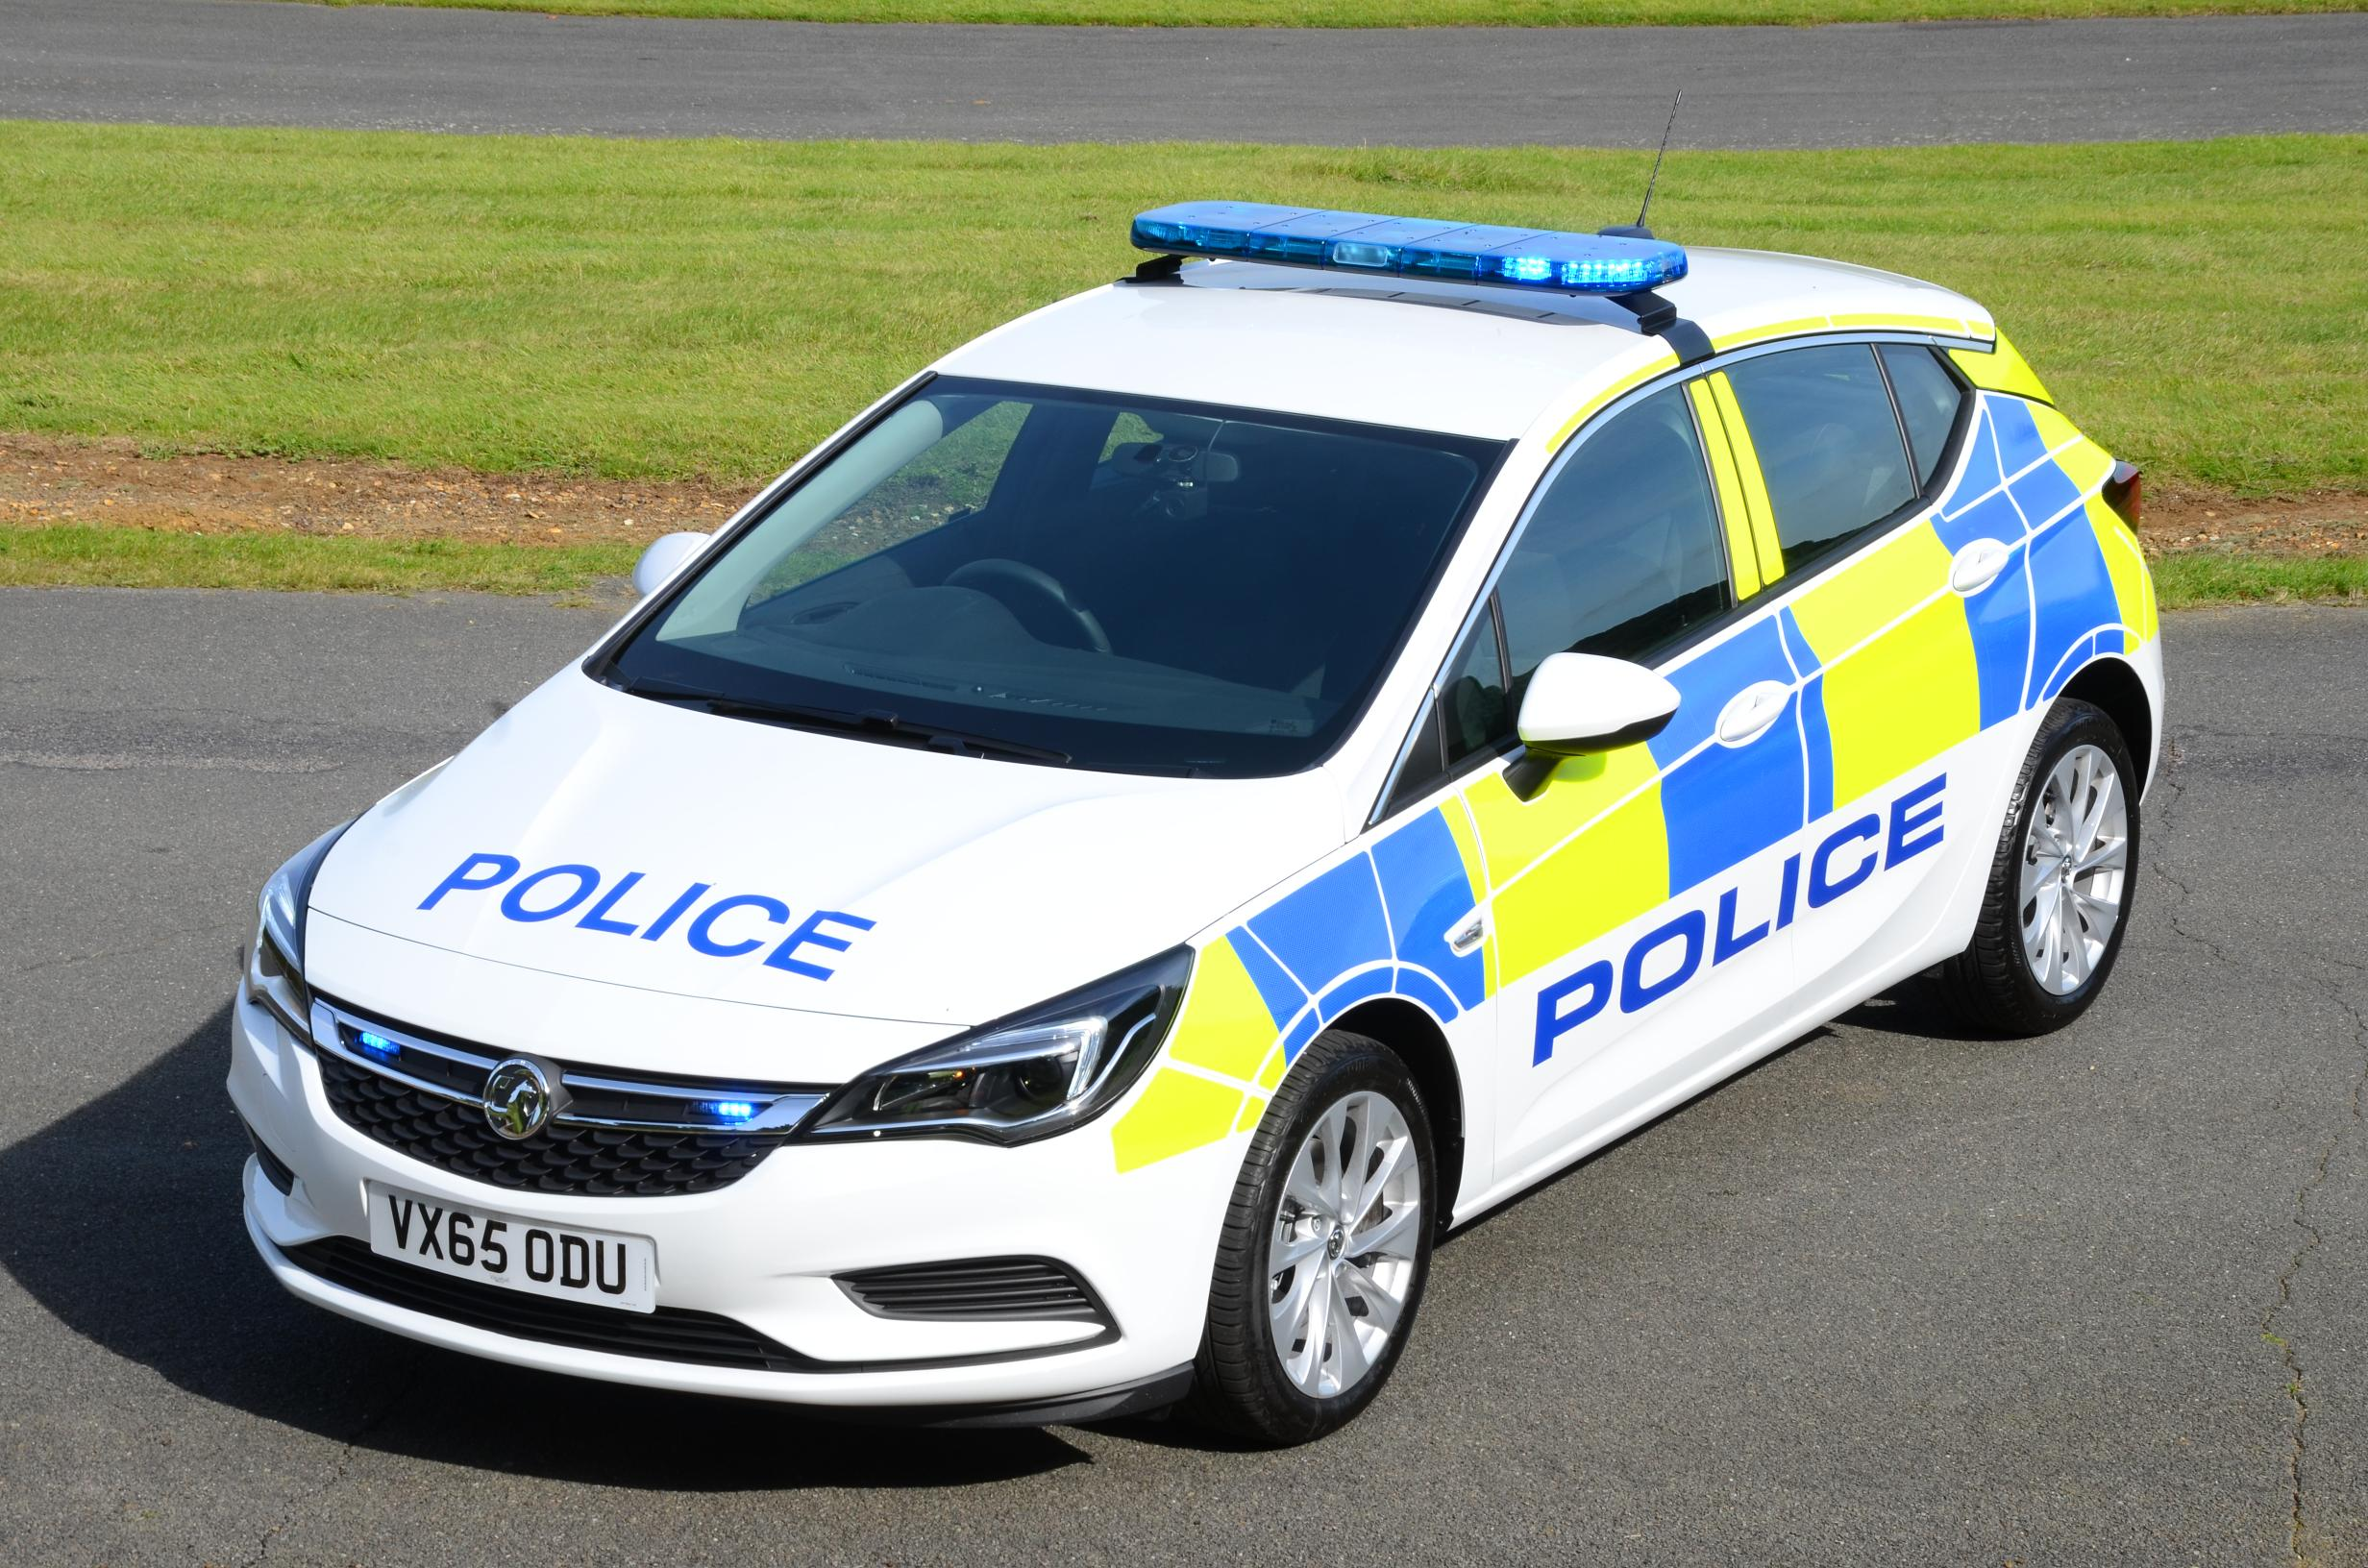 All New Vauxhall Arresting Astra K Enters Police Service In The Uk Photo Gallery 102730on 2017 Kia Sportage